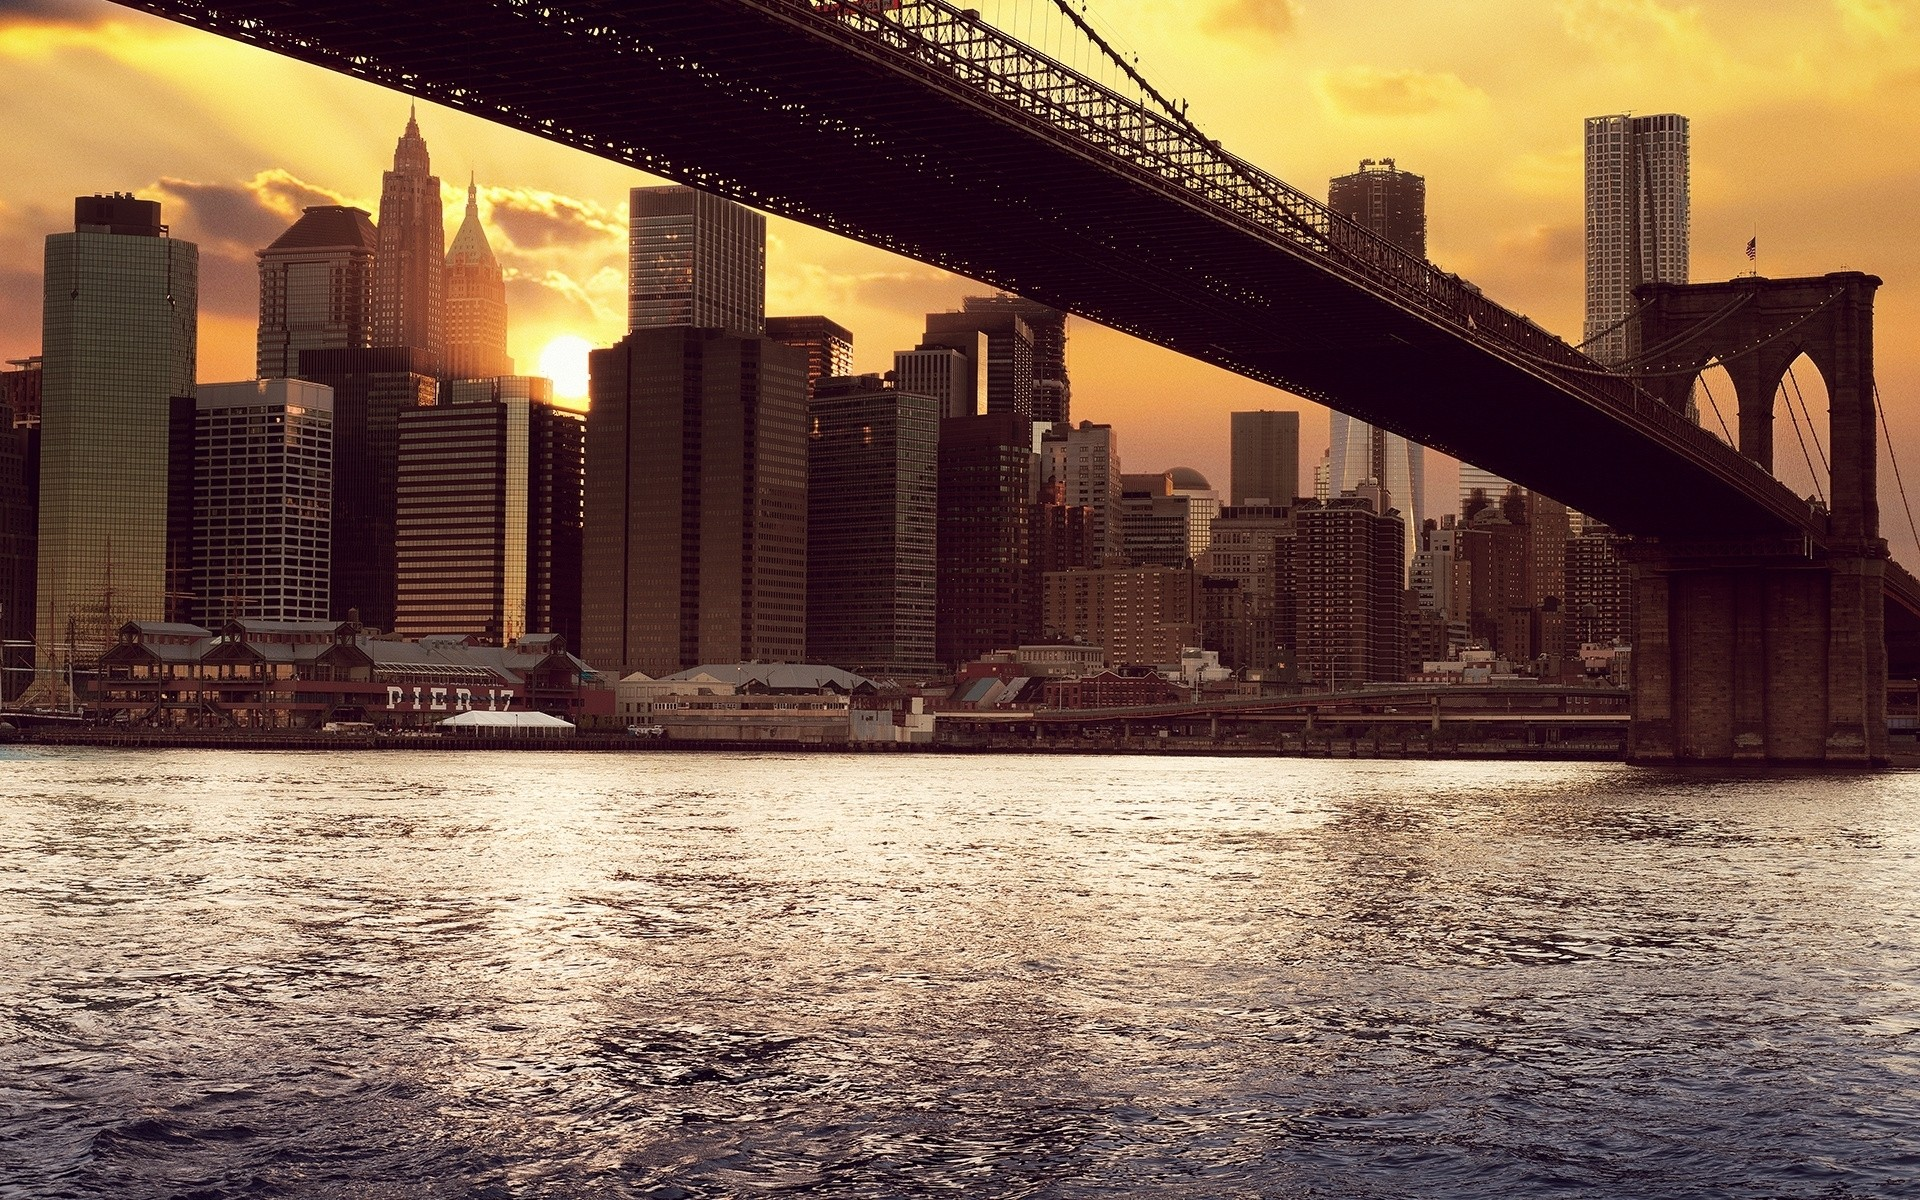 Nyc wallpaper 21950 1920x1200 px for Immagini new york hd